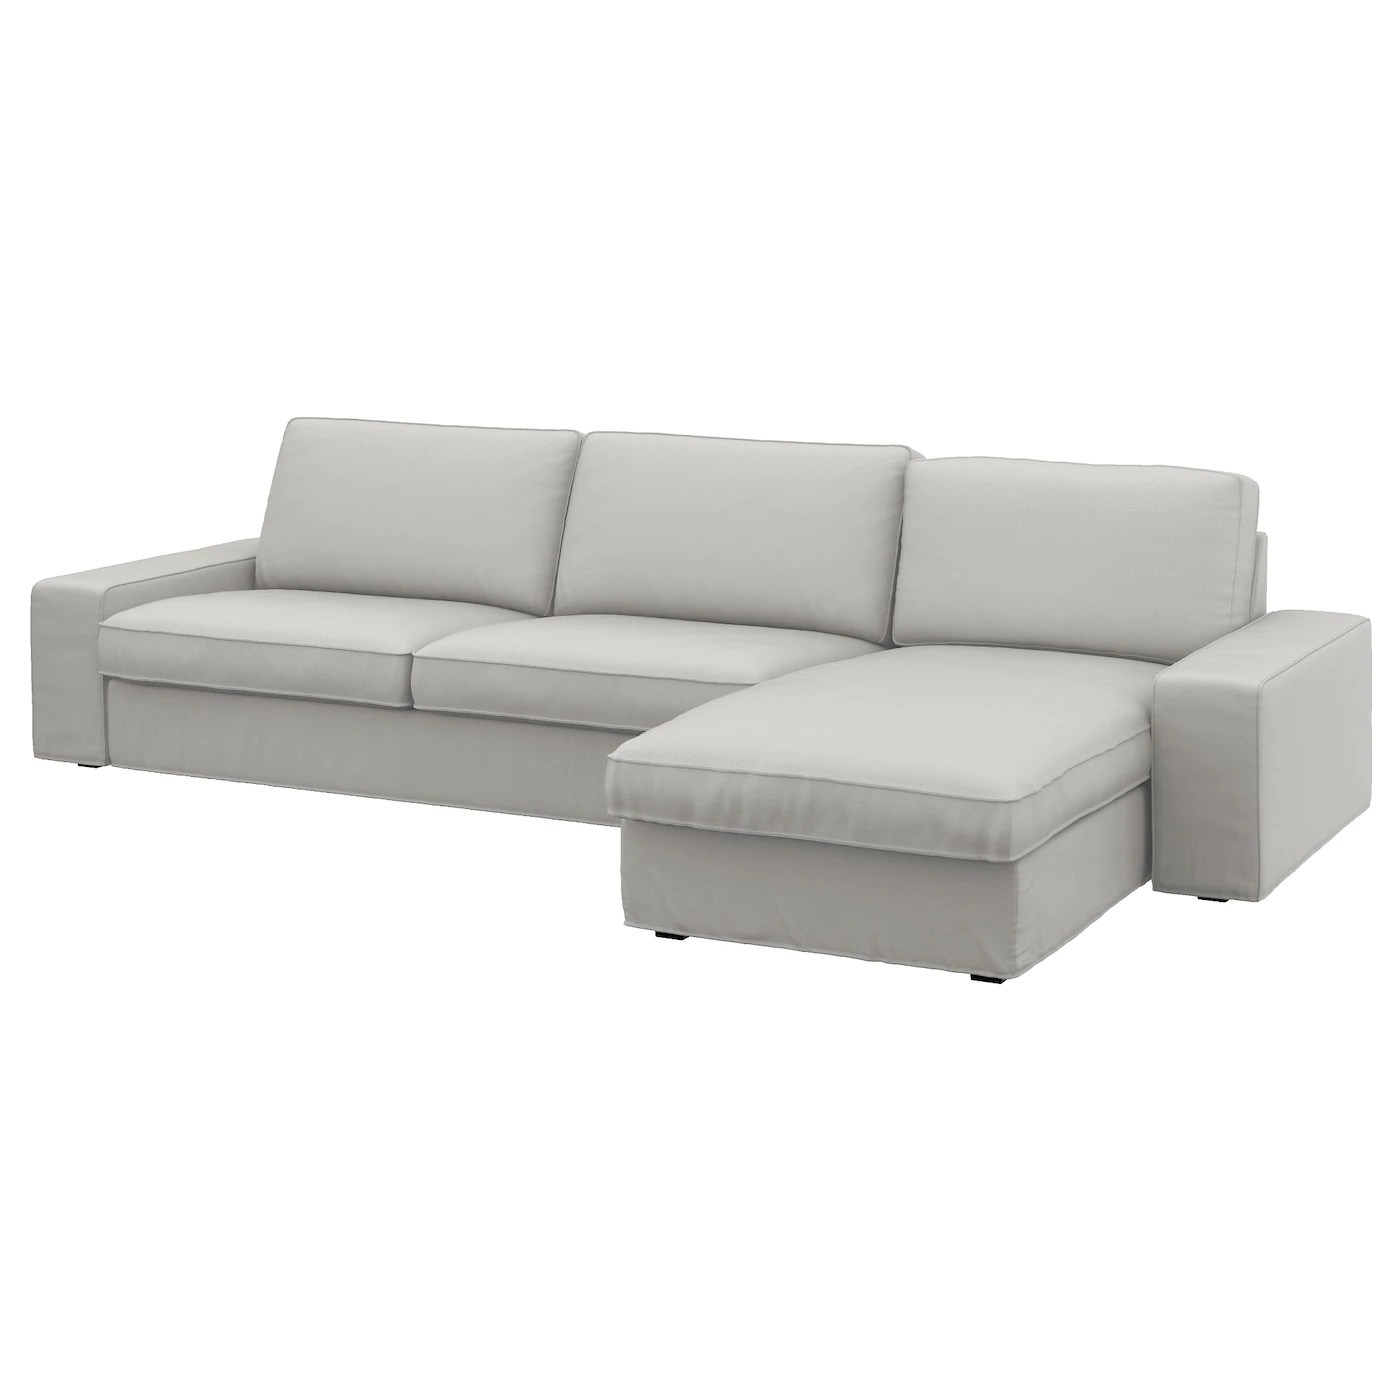 sofa chair ikea target patio chairs folding kivik 4 seat with chaise longue ramna light grey